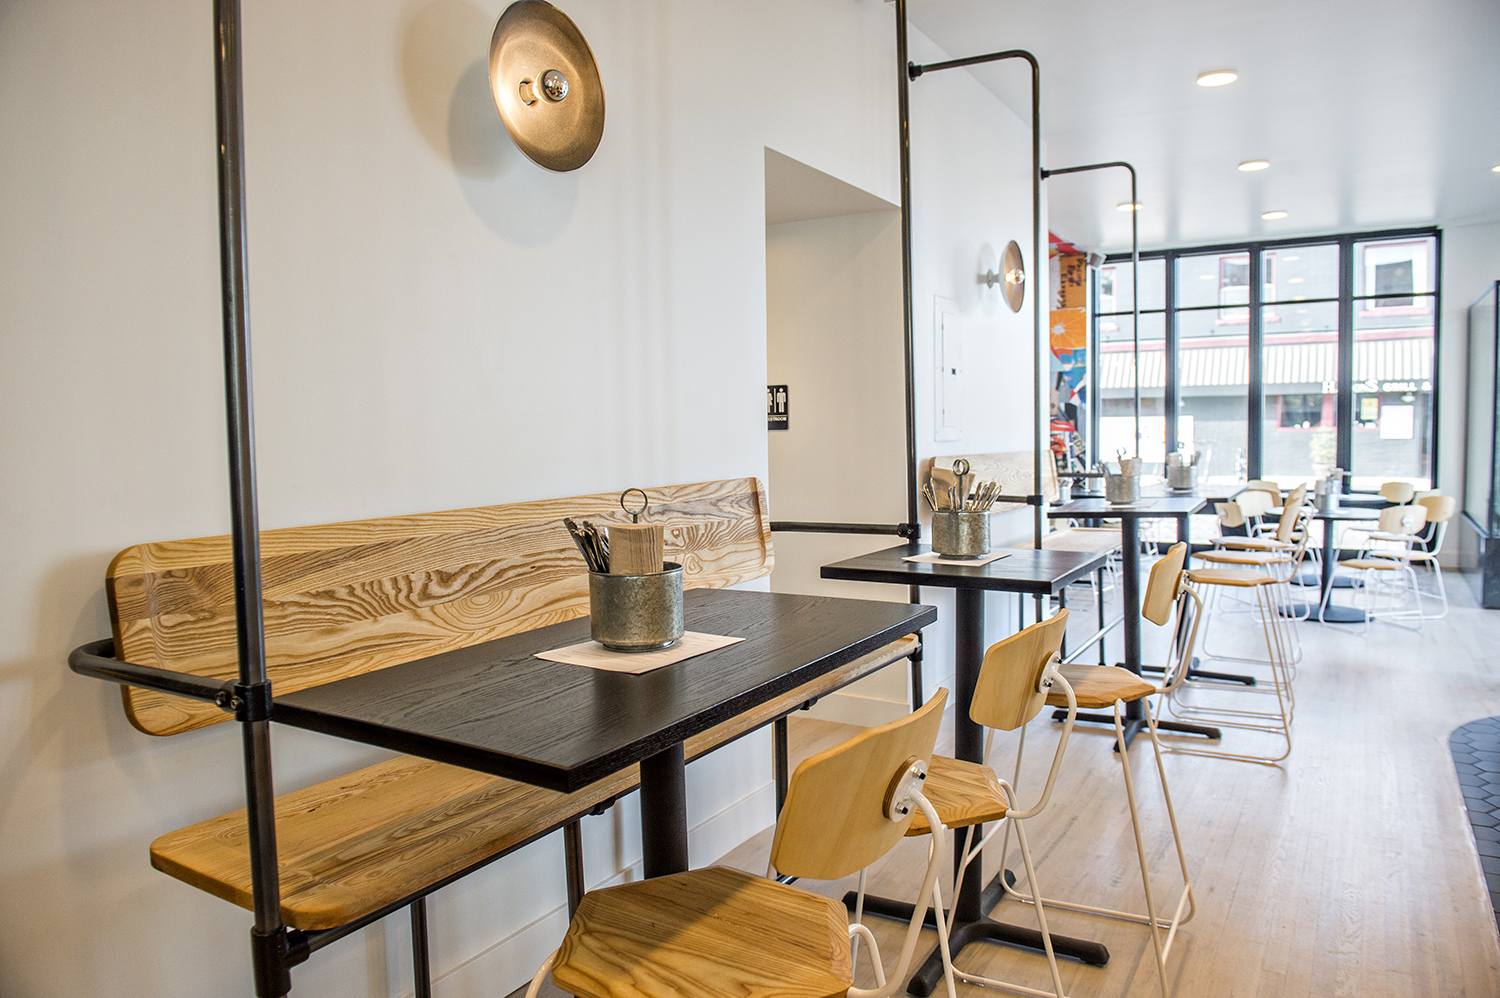 Alex Seidel's Chicken Shop Is a New Lunchtime Staple